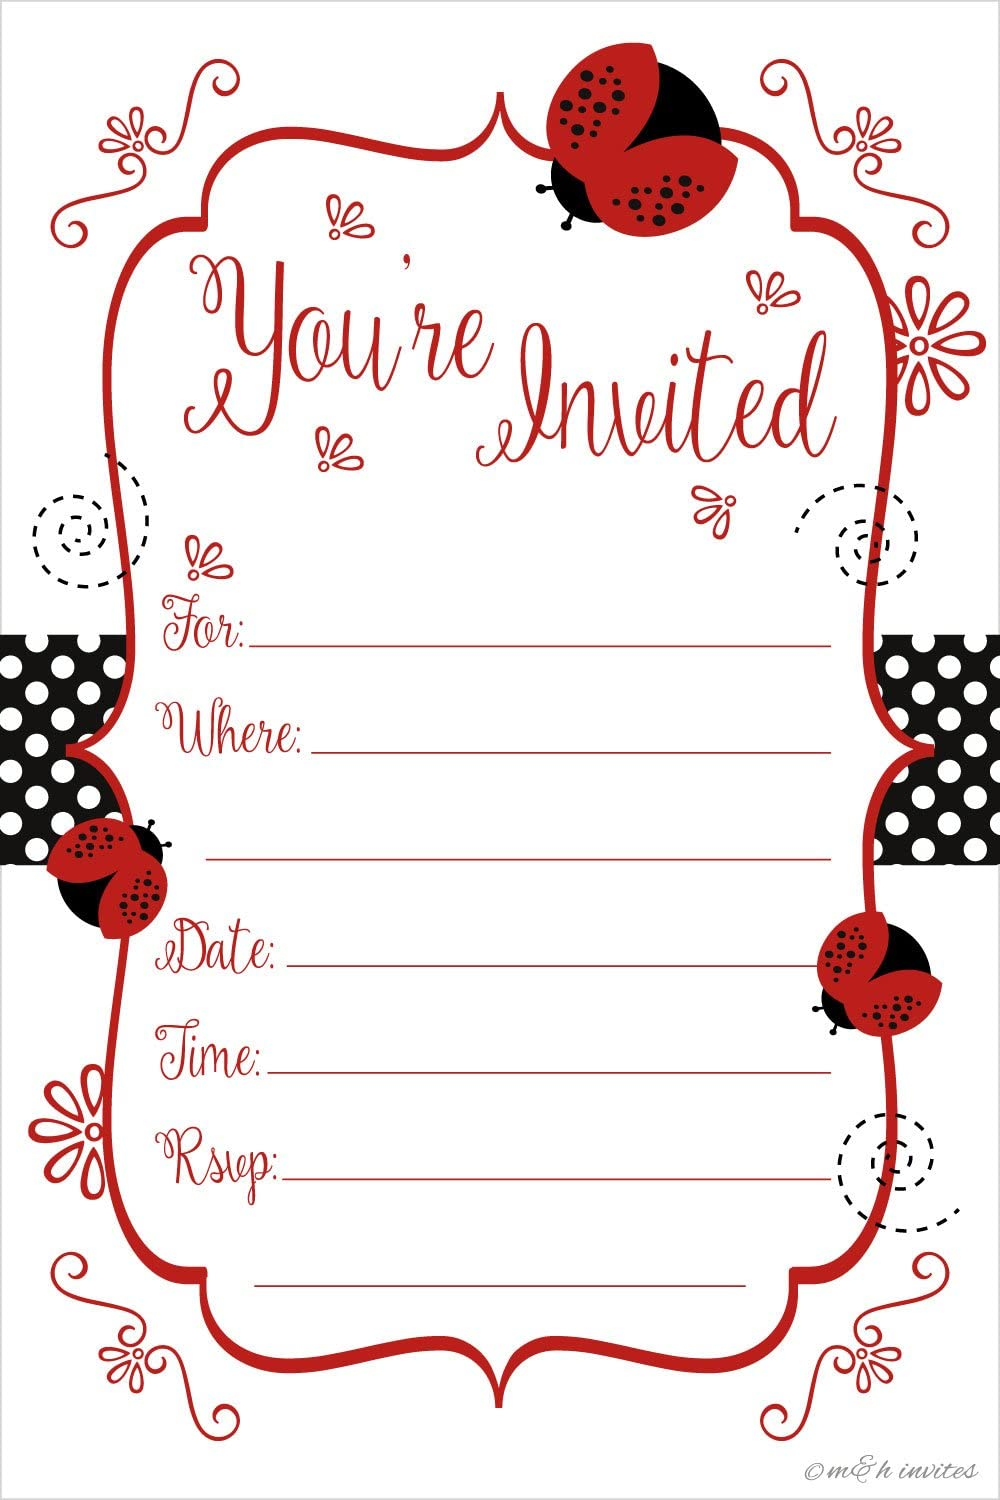 Ladybug Party Invitations - Birthday, Baby Shower, Any Occasion - Fill In Style (20 Count) With Envelopes